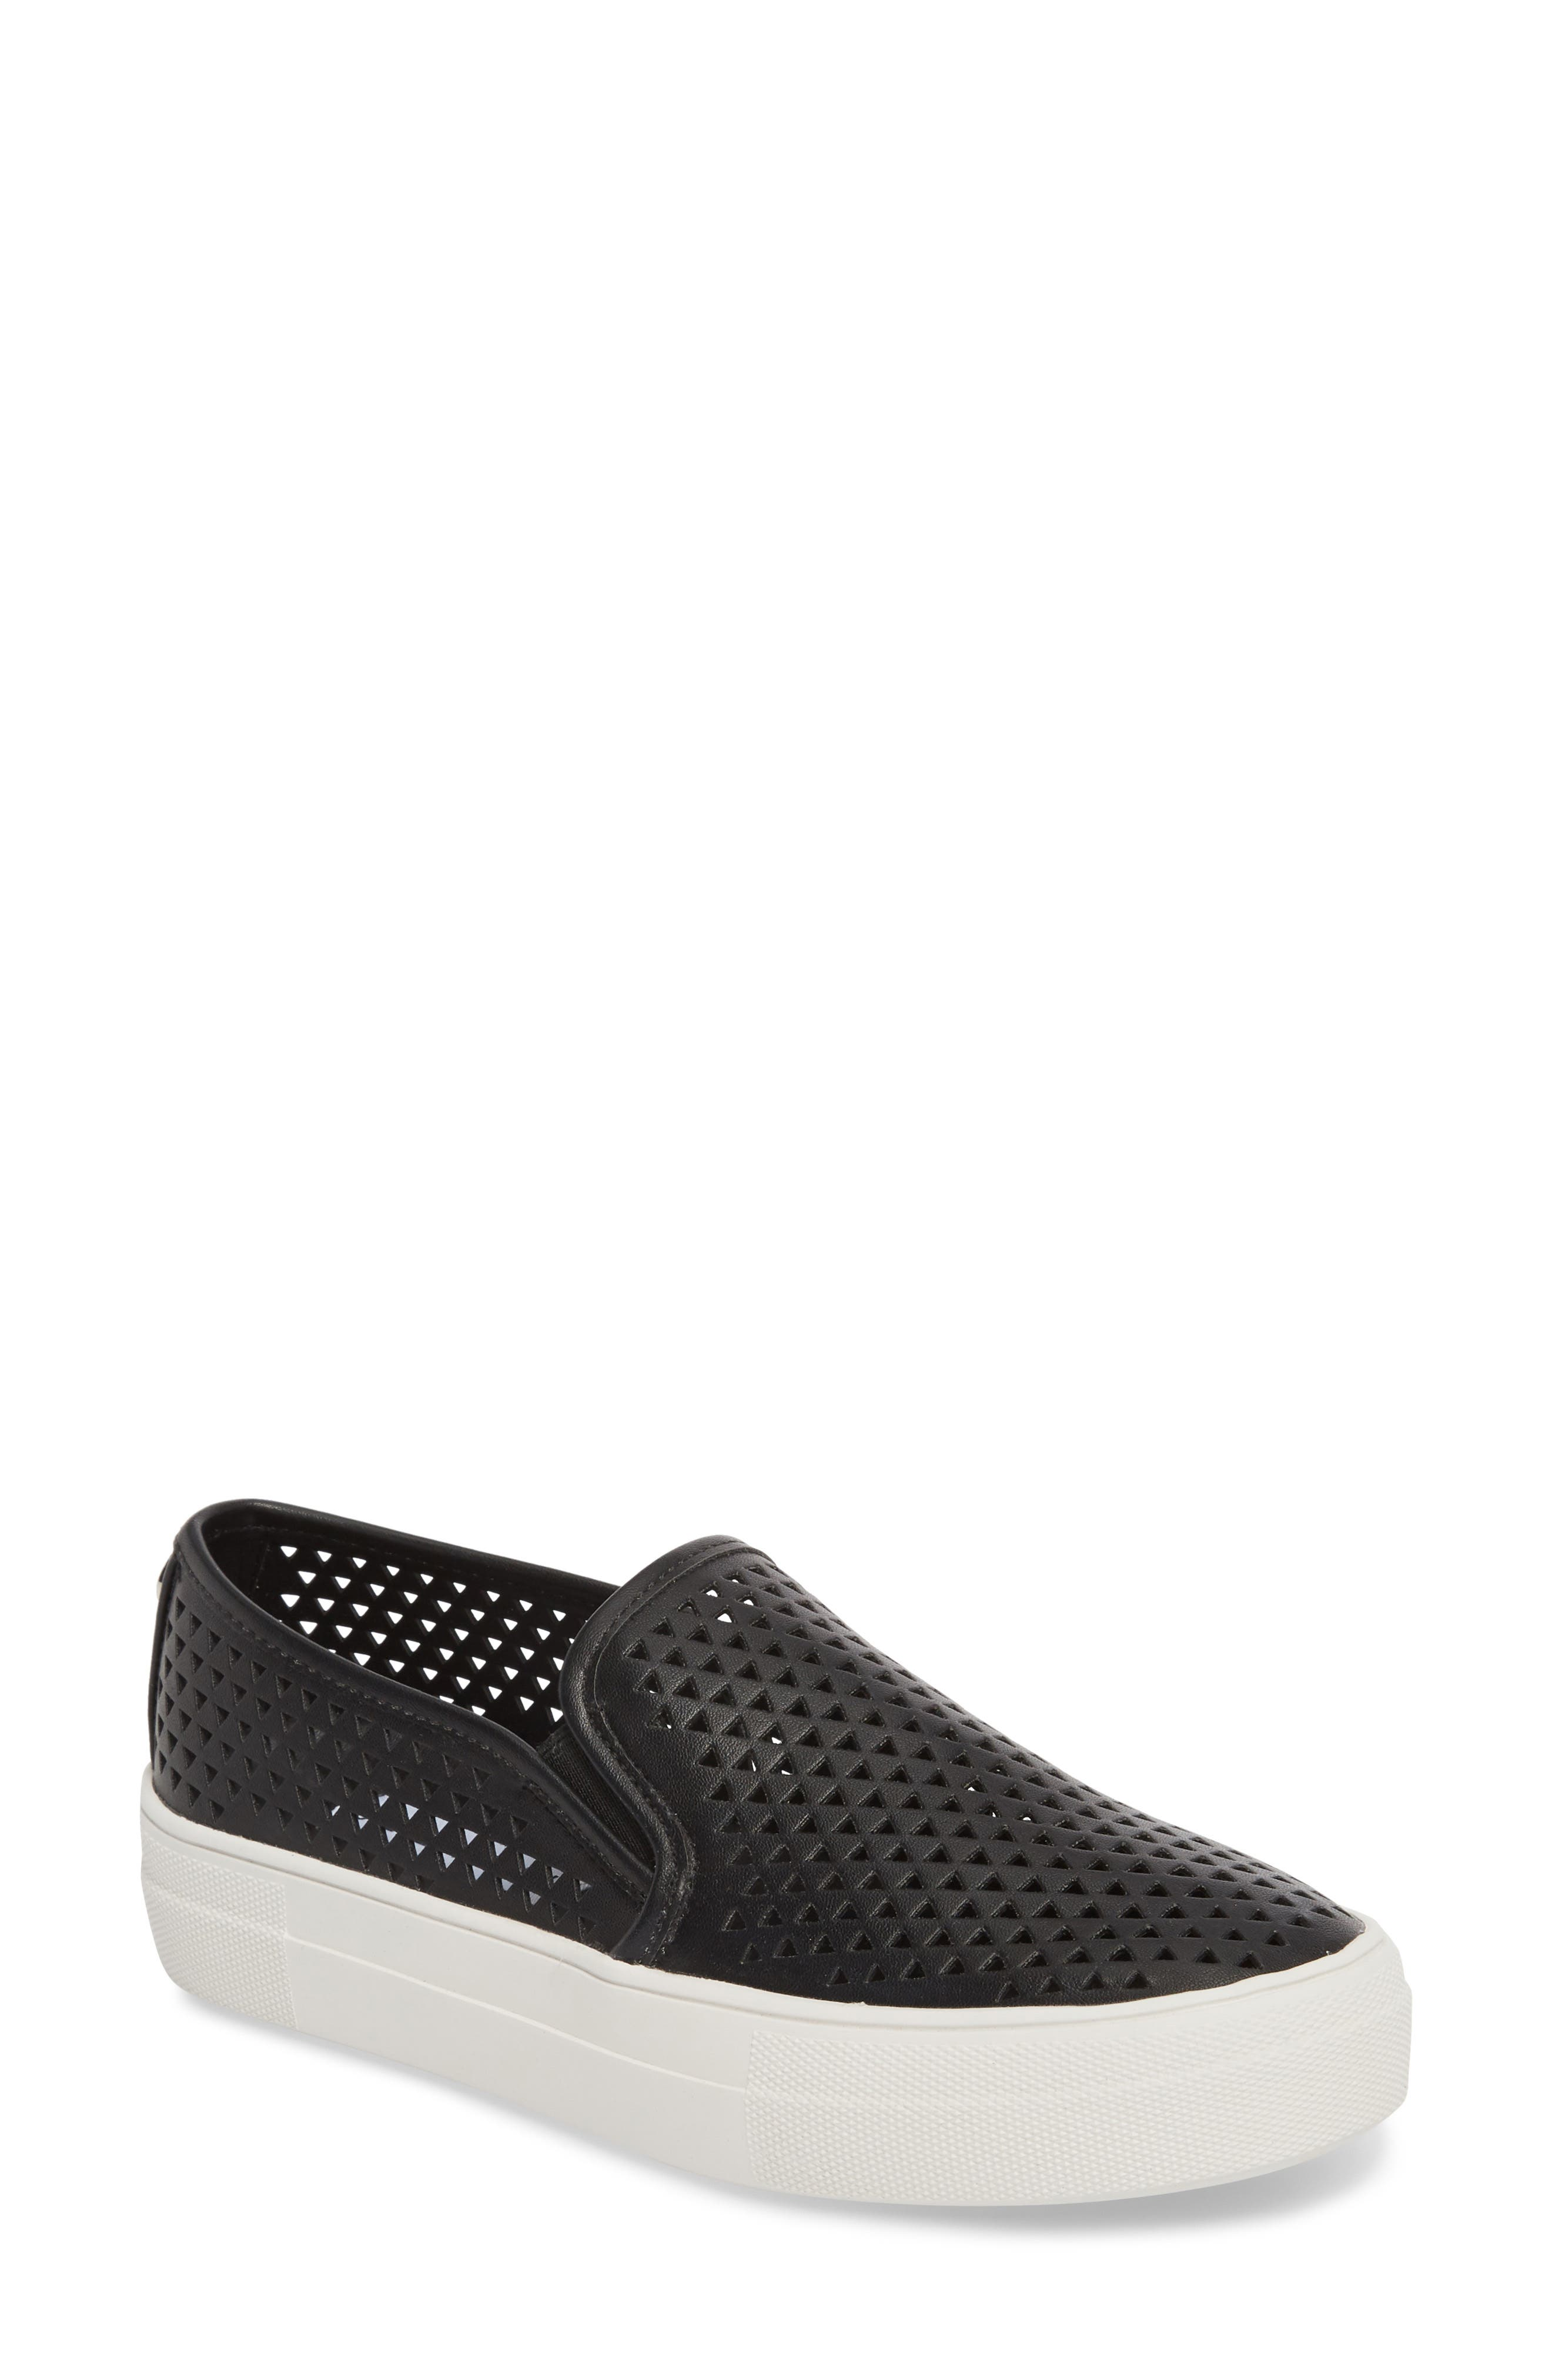 Gal-P Perforated Slip-On Sneaker,                         Main,                         color, Black